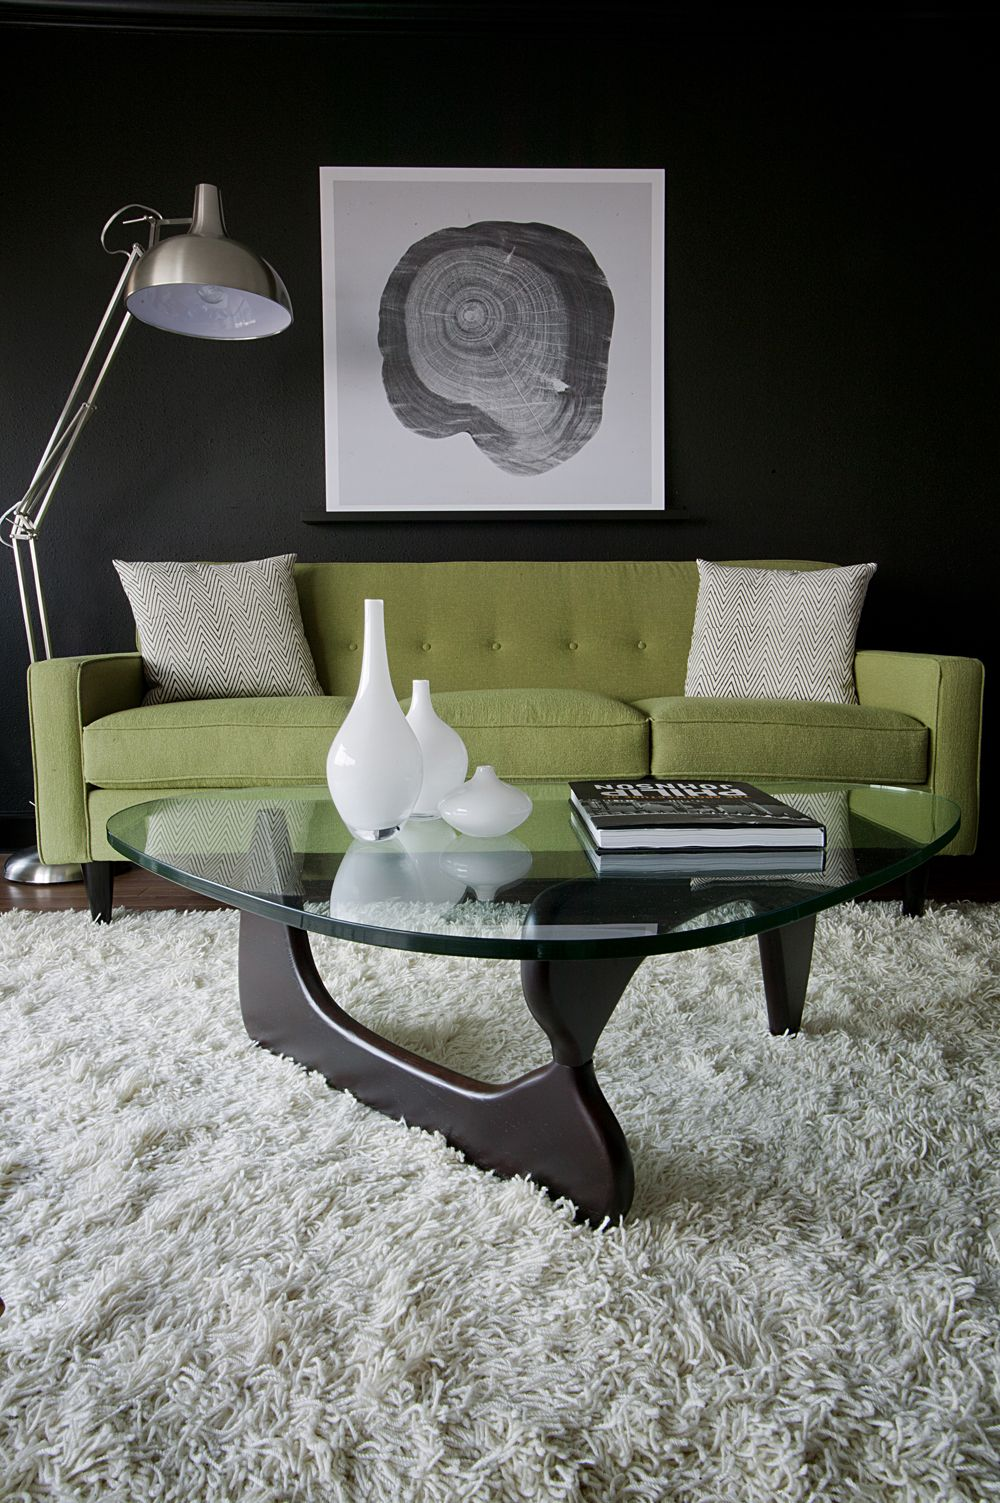 Houston House | Interior Design By Chris Nguyen, Midcentury Furniture  Combined With Art. Love